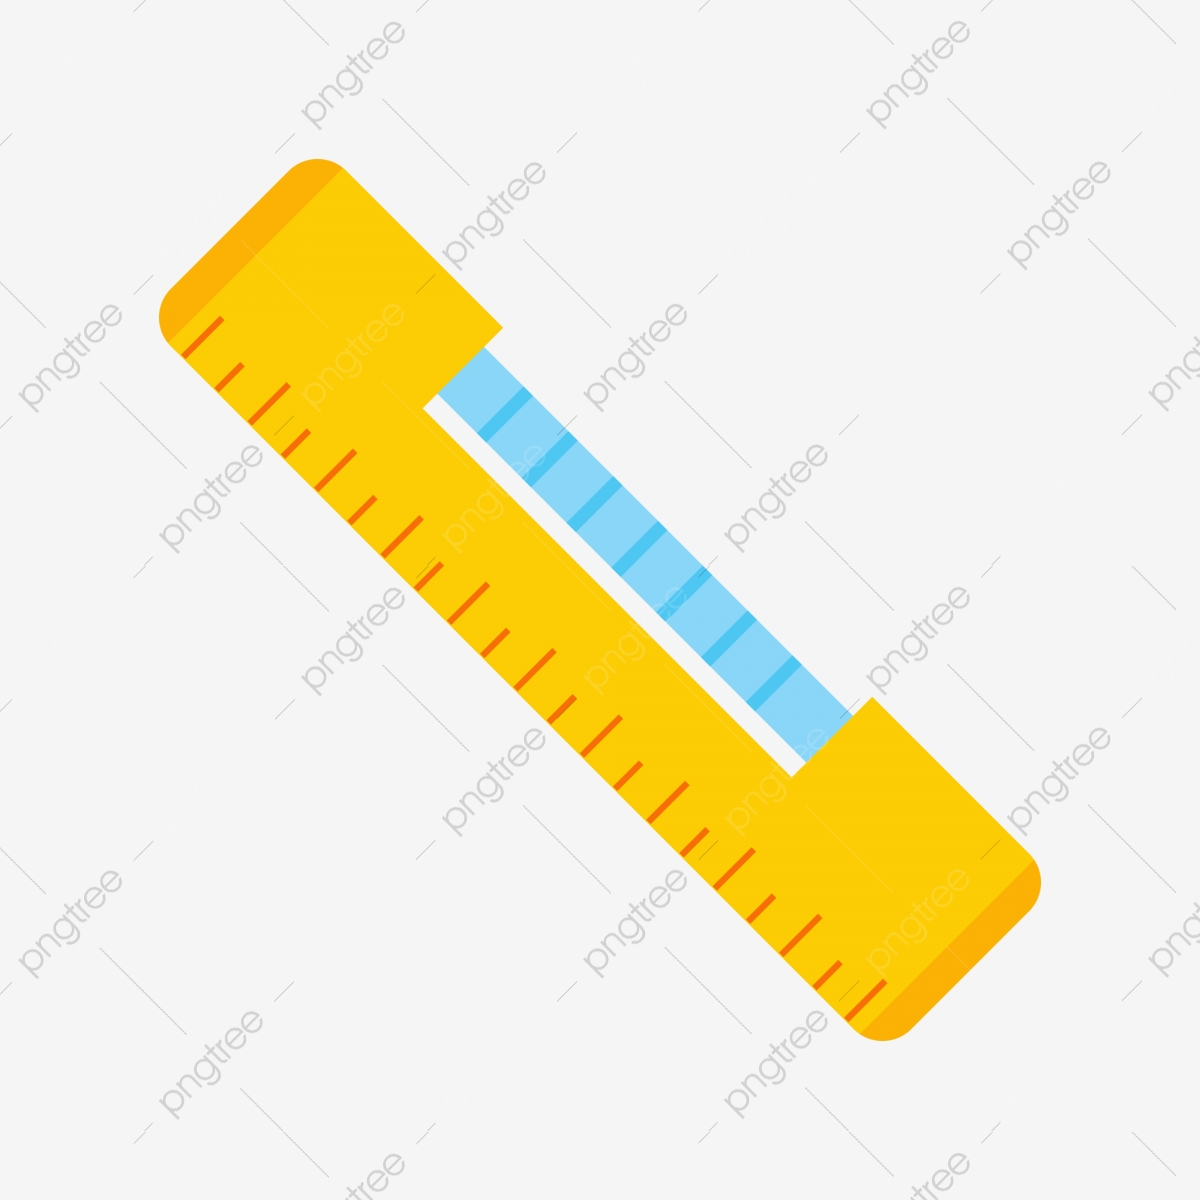 Cartoon Ruler Orange Ruler Illustration Wooden Ruler Home.